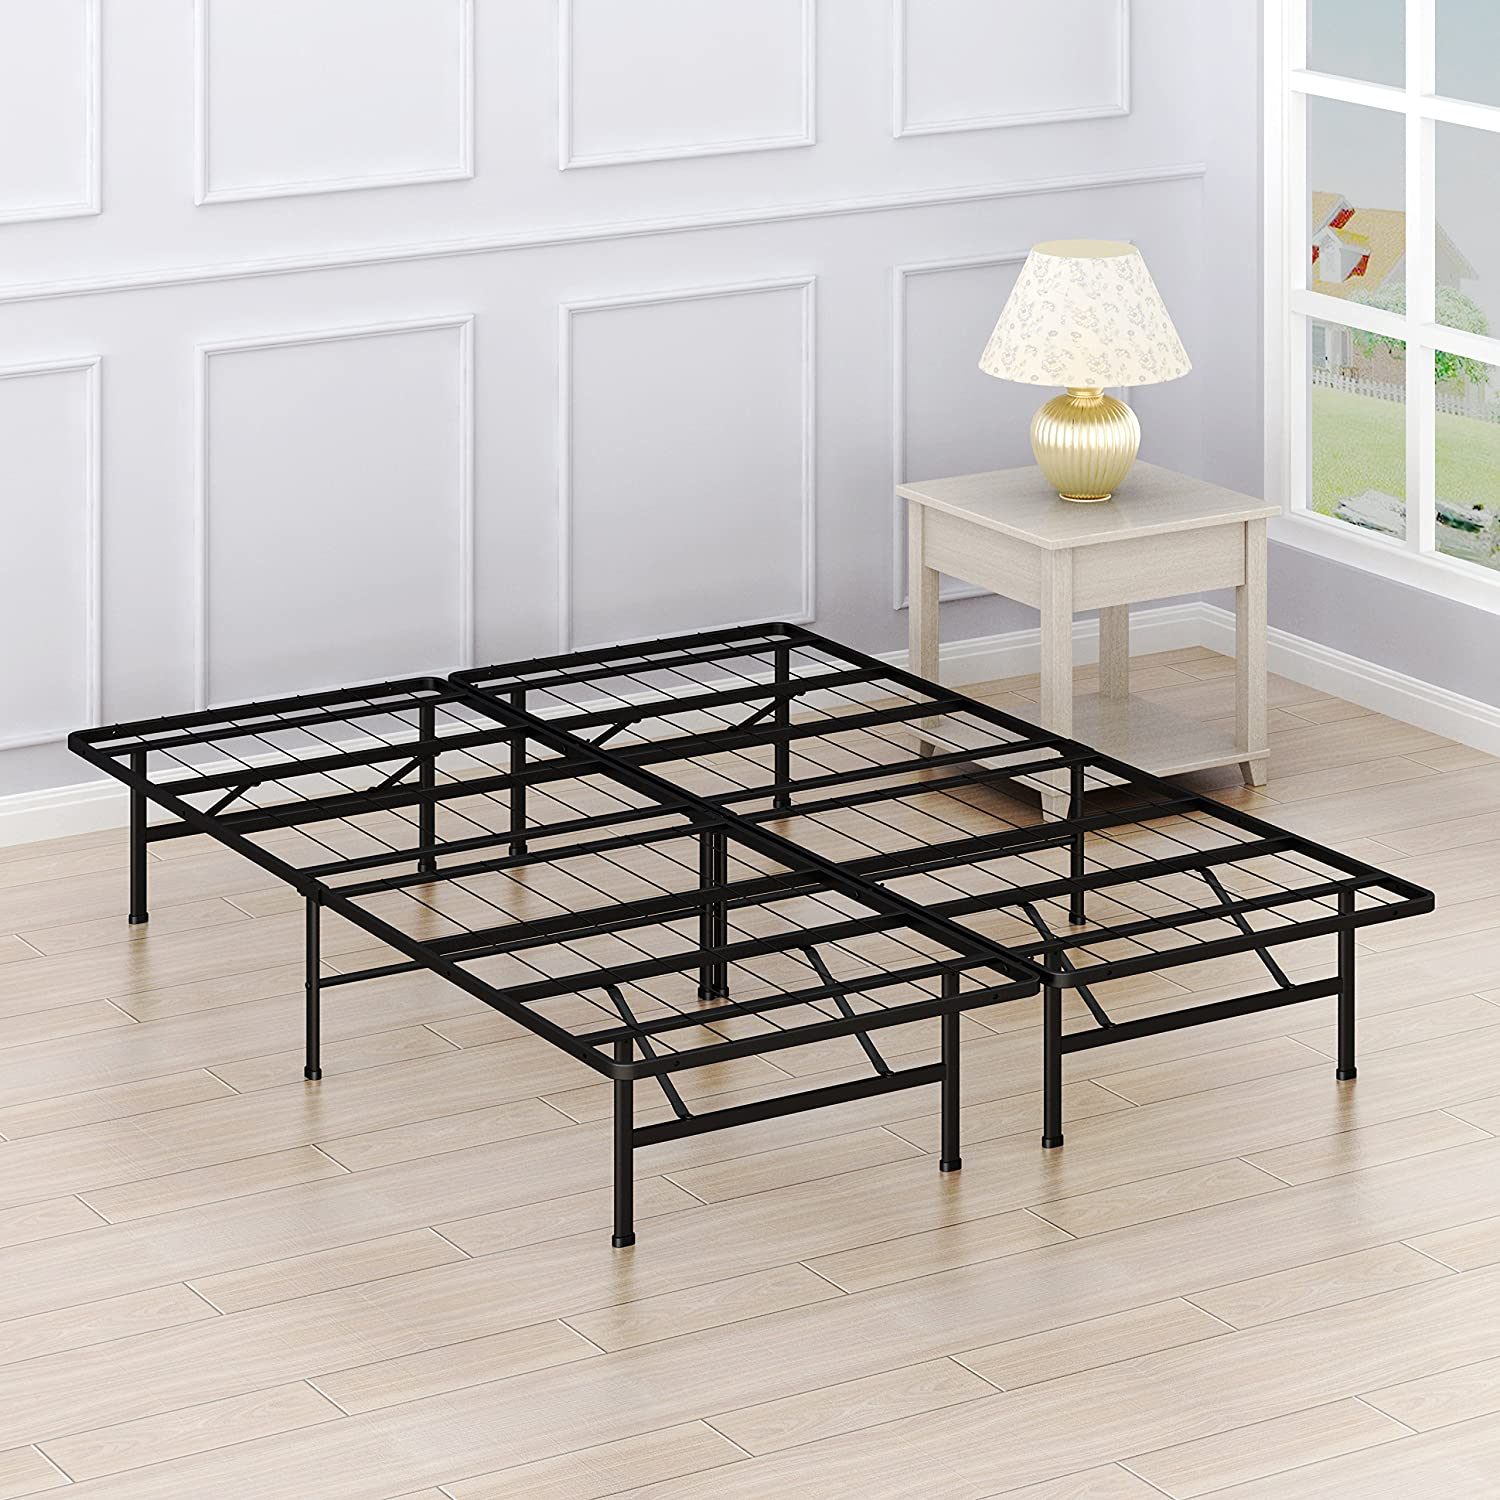 Simple Houseware 14-Inch Queen Size Mattress Foundation Platform Bed Frame